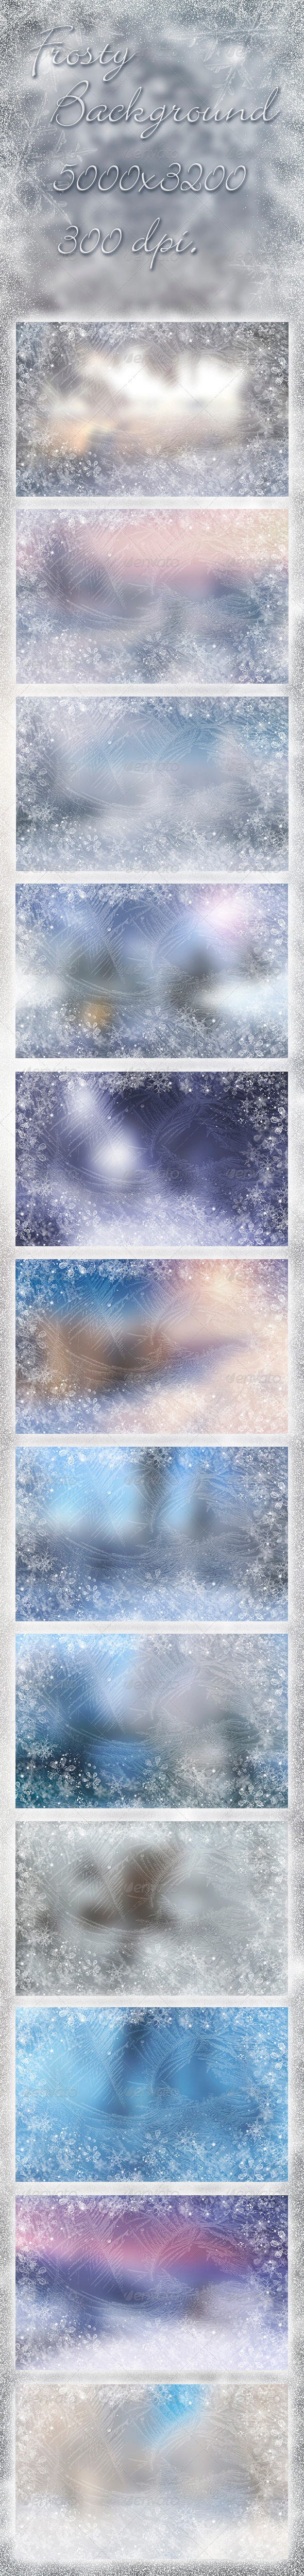 Frosty Background - Abstract Backgrounds